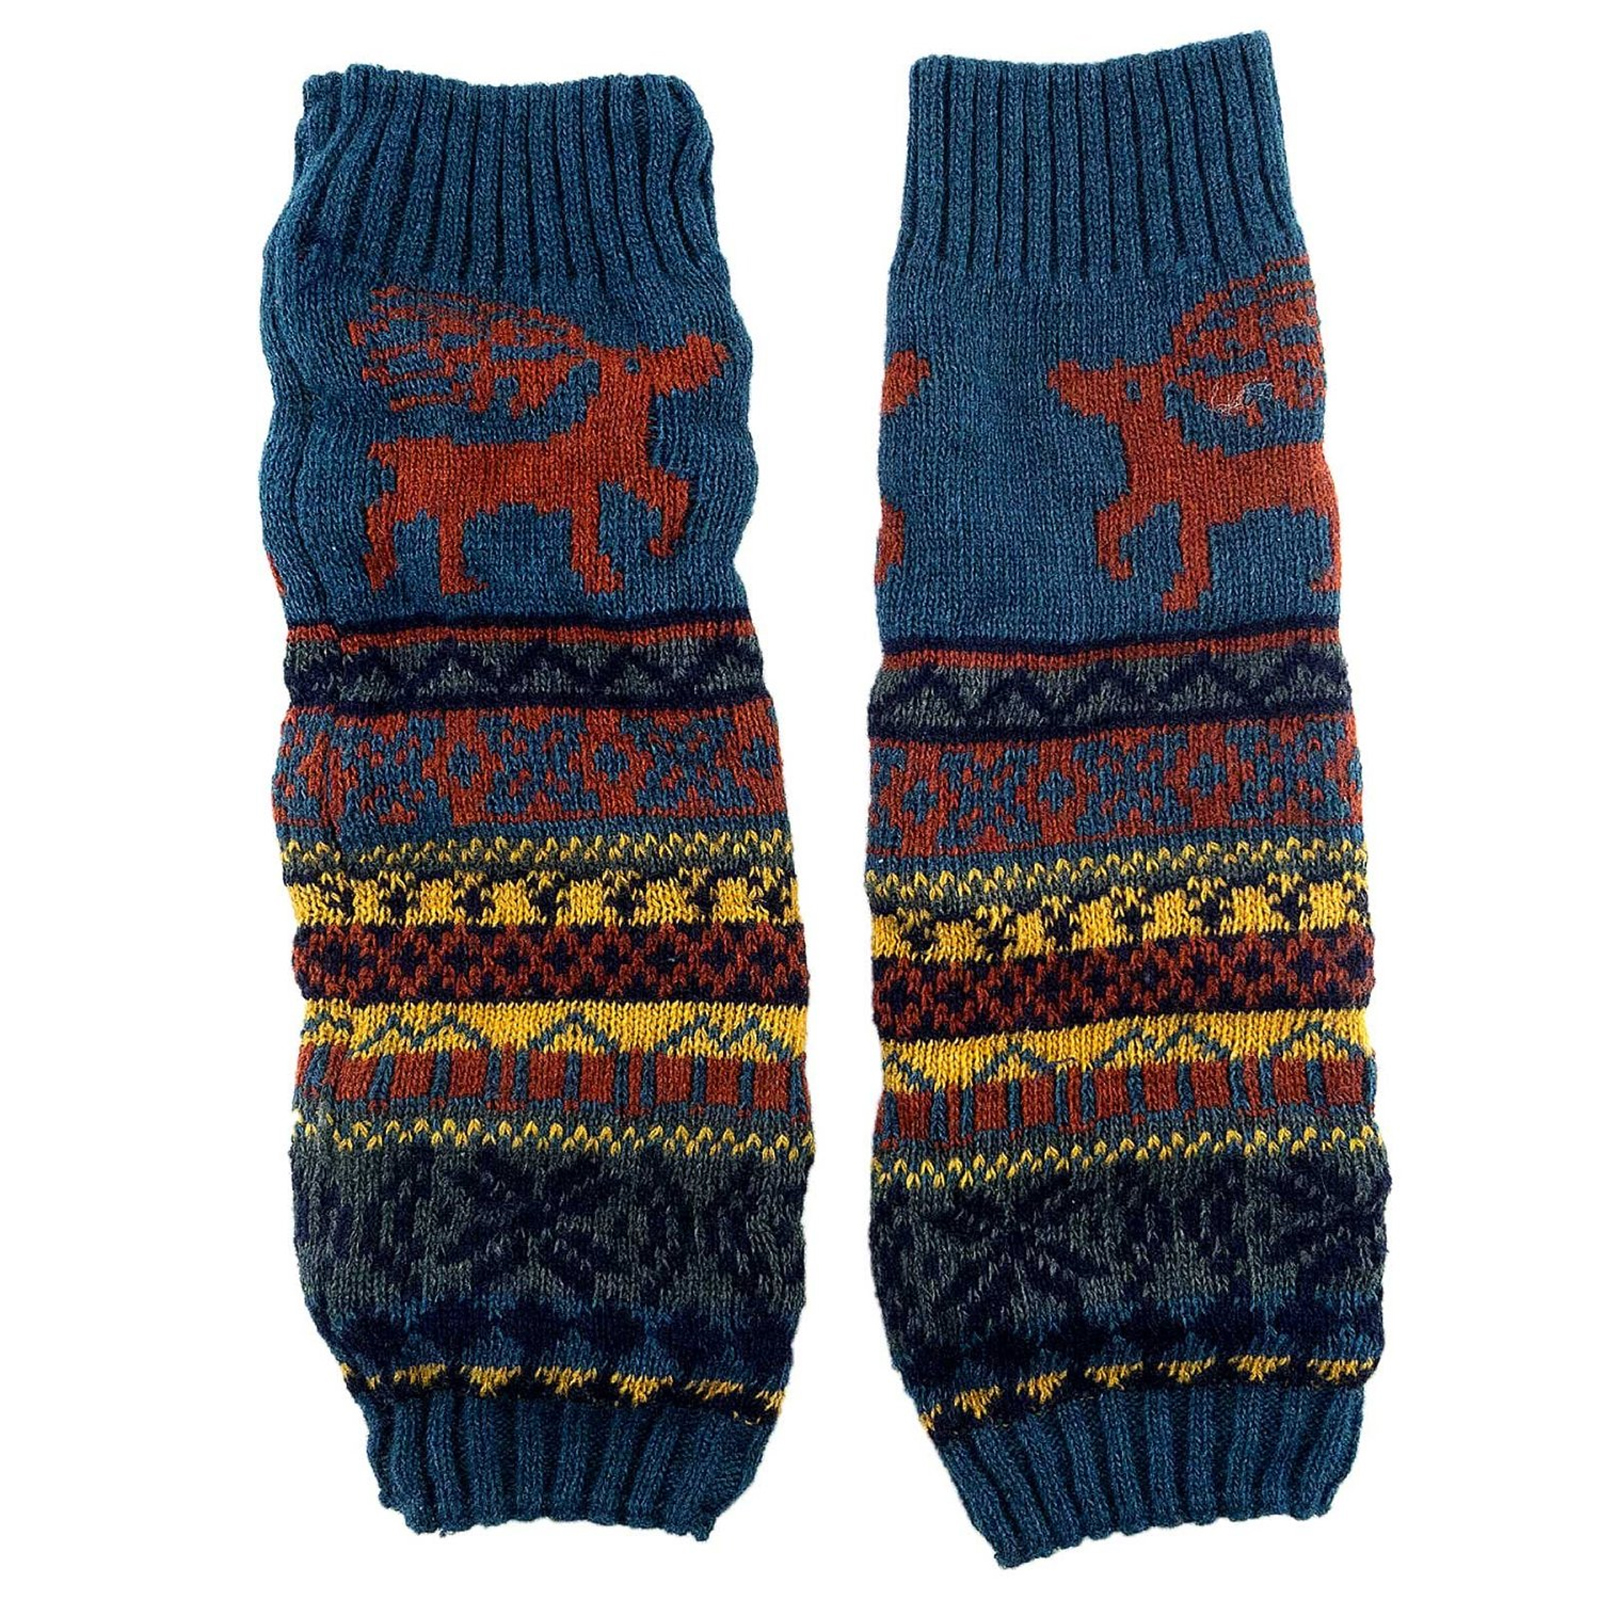 Leg warmers cover women's lower legs. These look like socks but are thicker and often footless, and formerly an accessory you saw more in the 80's, ballet and classical dancers popularly continue to use these for support.